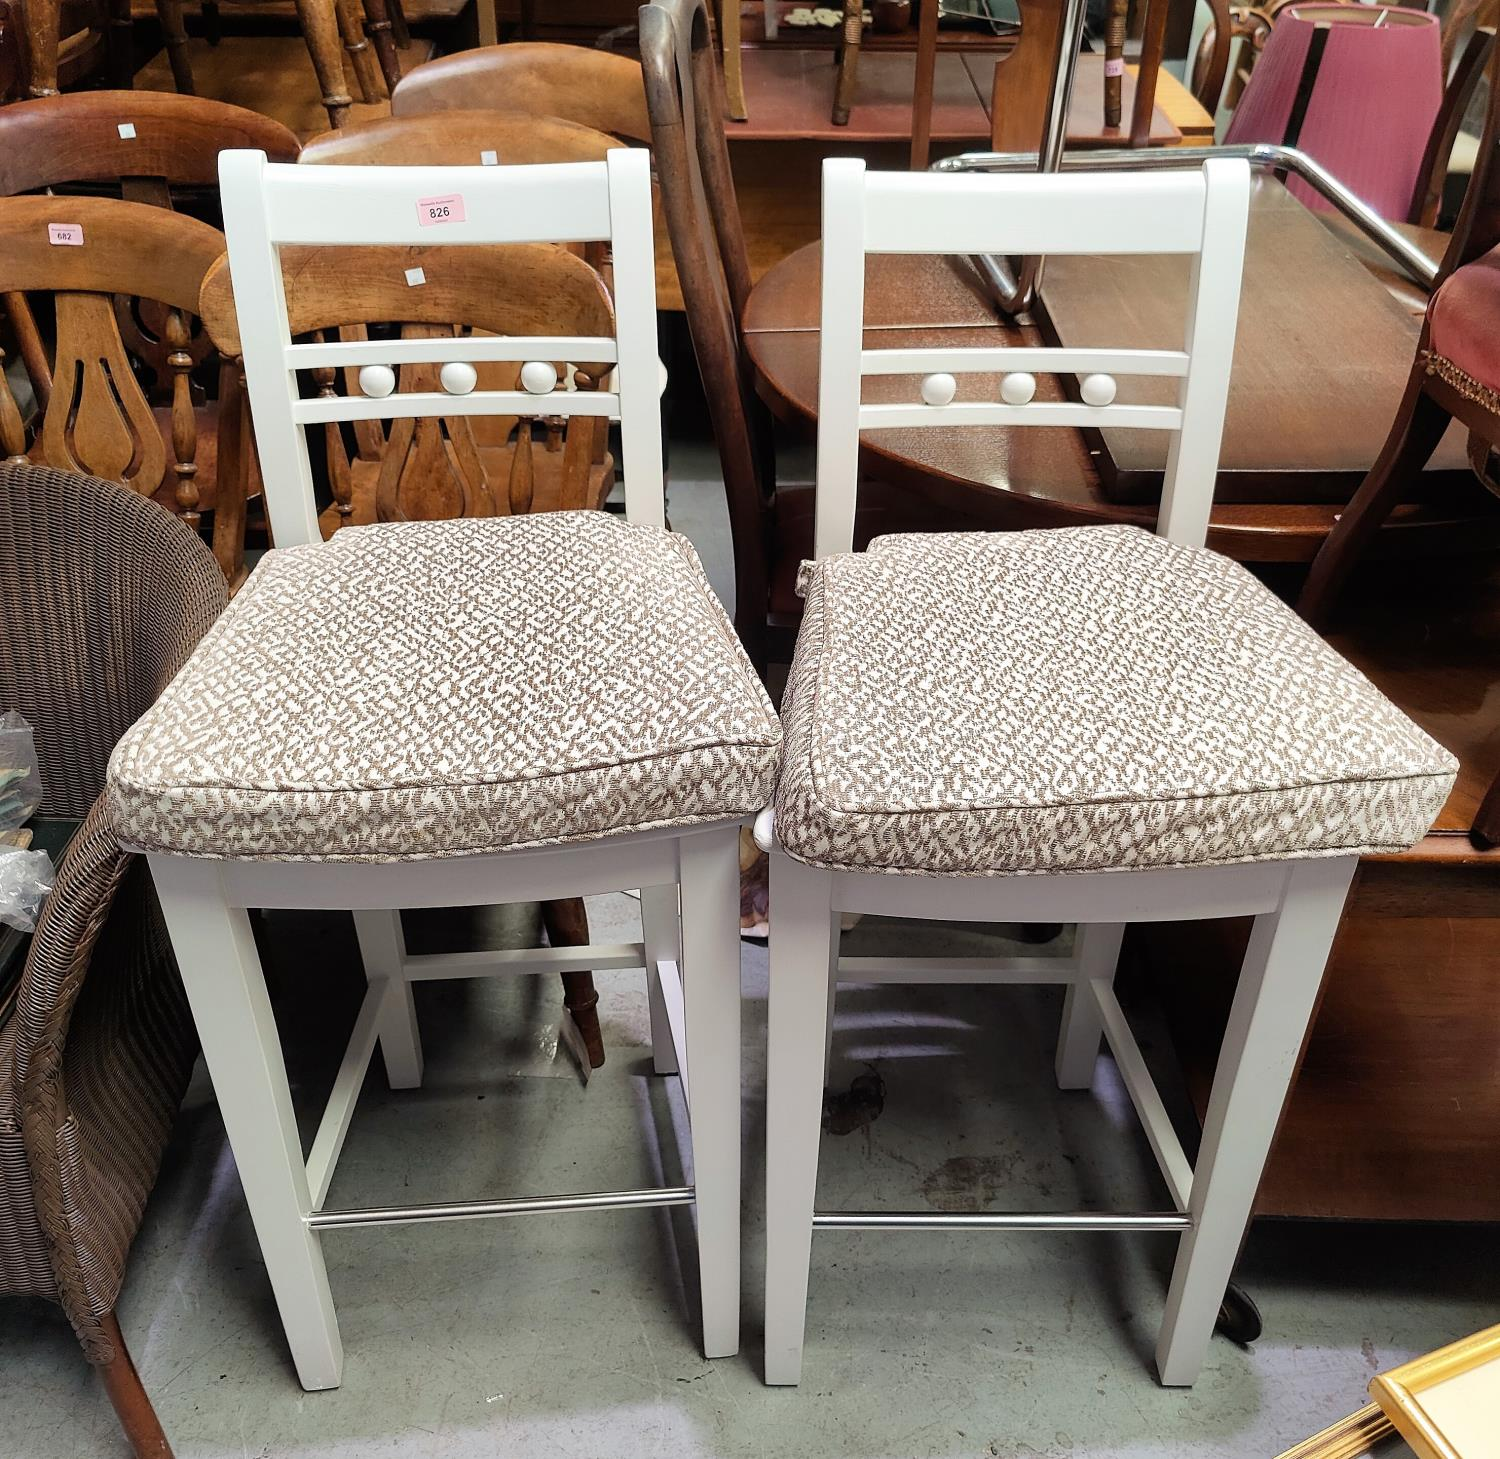 3 bar chairs in white finish by Neptune